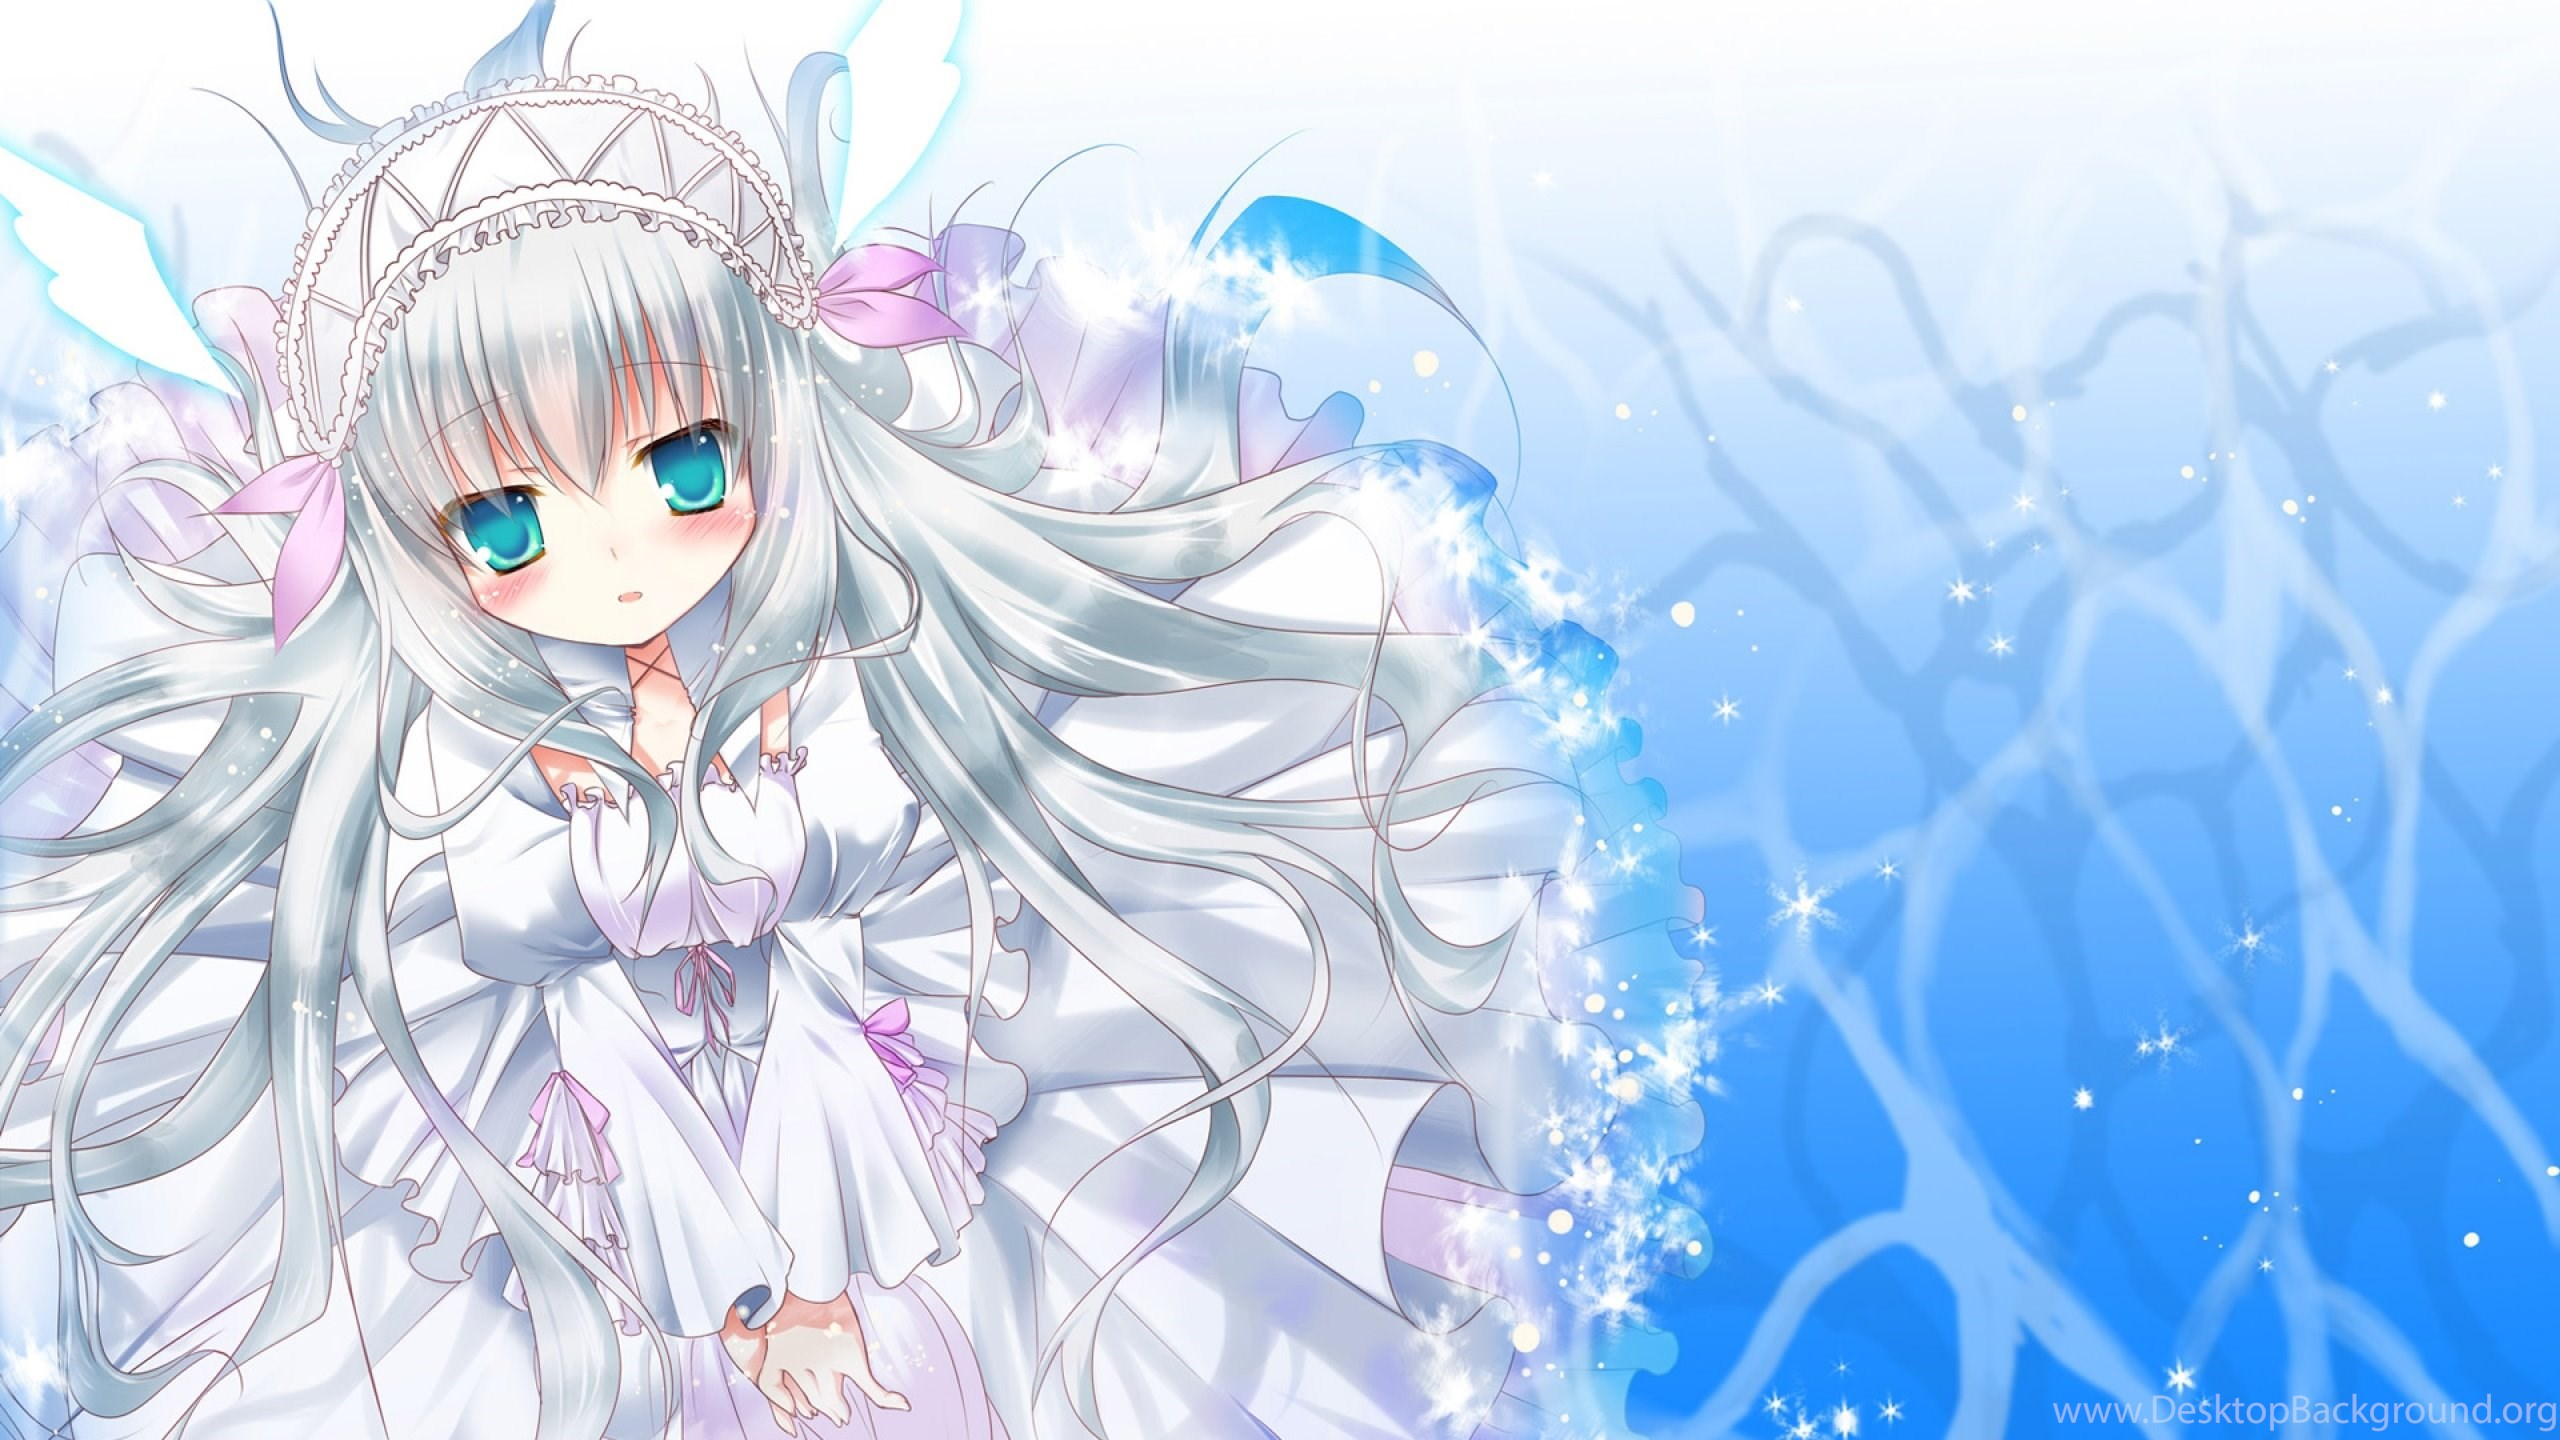 Download wallpapers 2560x1440 anime girl cute - Cute anime girl wallpaper download ...